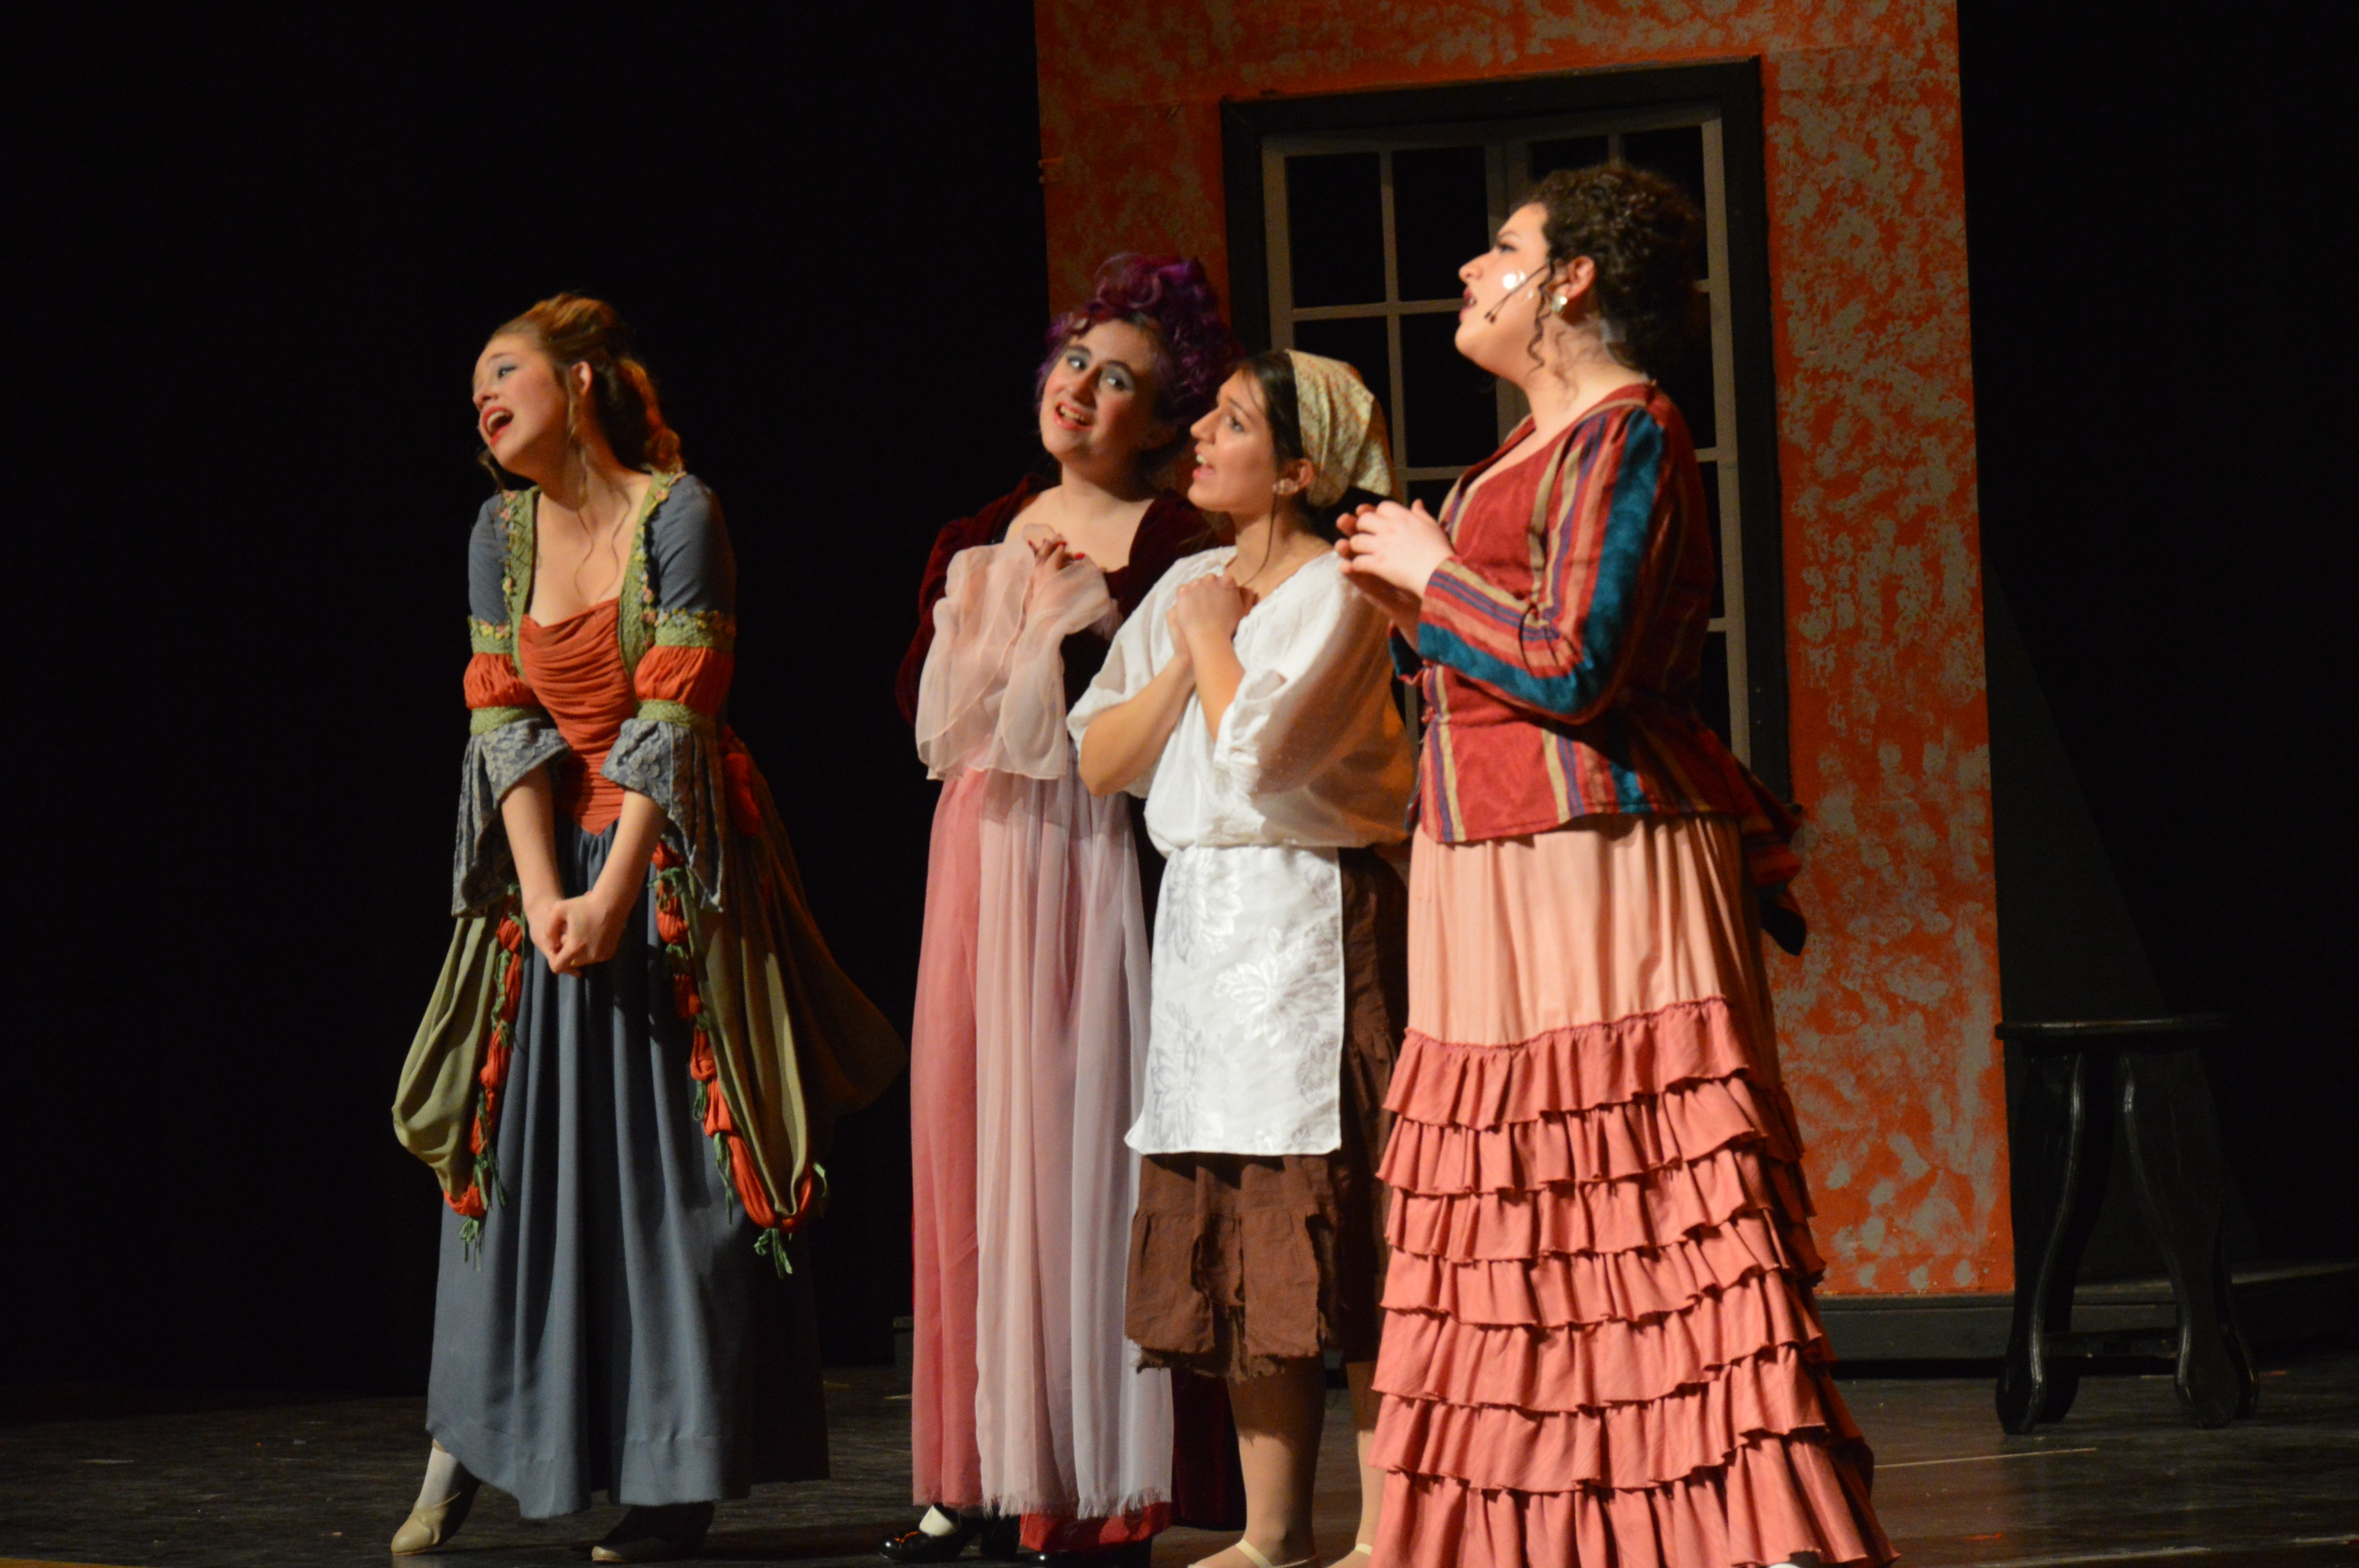 Cinderella, her stepmother and stepsisters sing about their wishes to marry the Prince and move into the Castle.